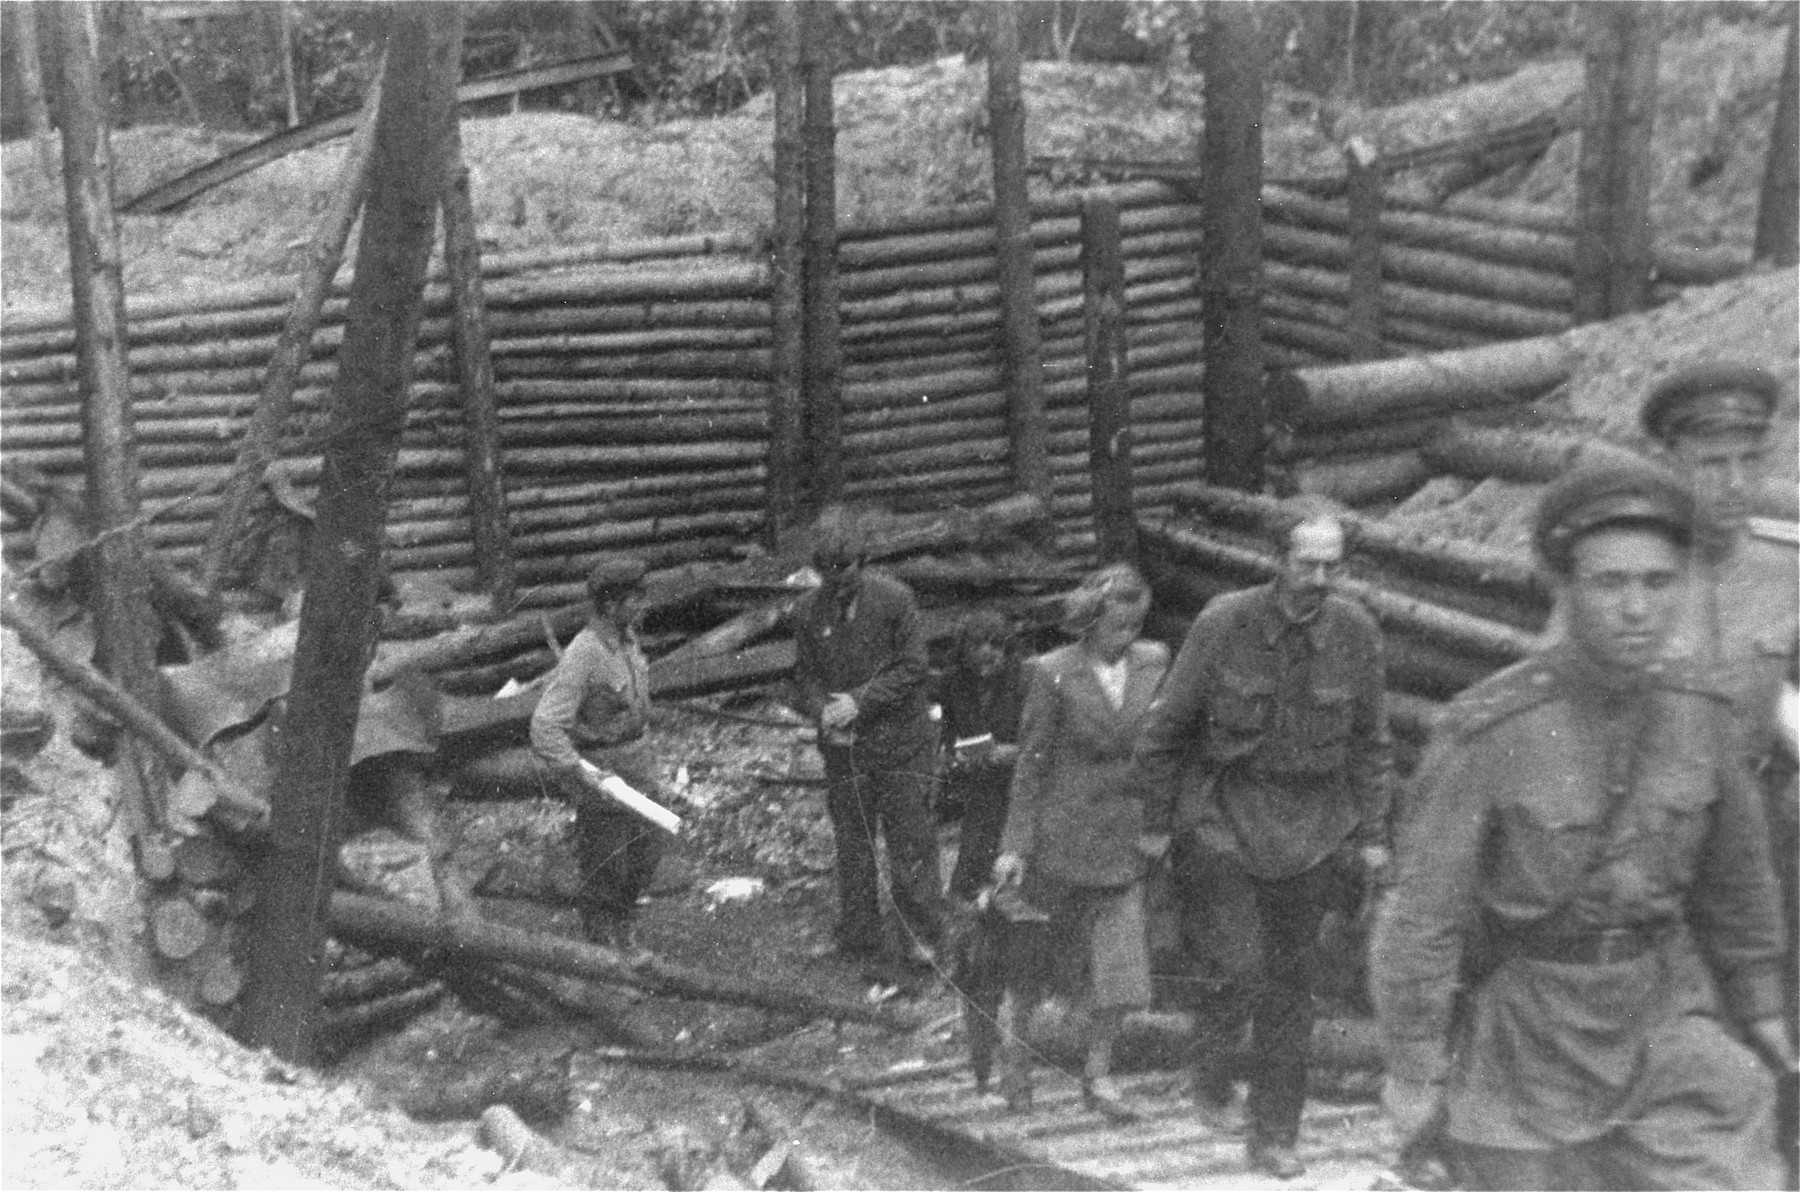 Soviet soldiers and investigators view the site where the corpses of Jewish prisoners were burned in the Maly Trostinets concentration camp.